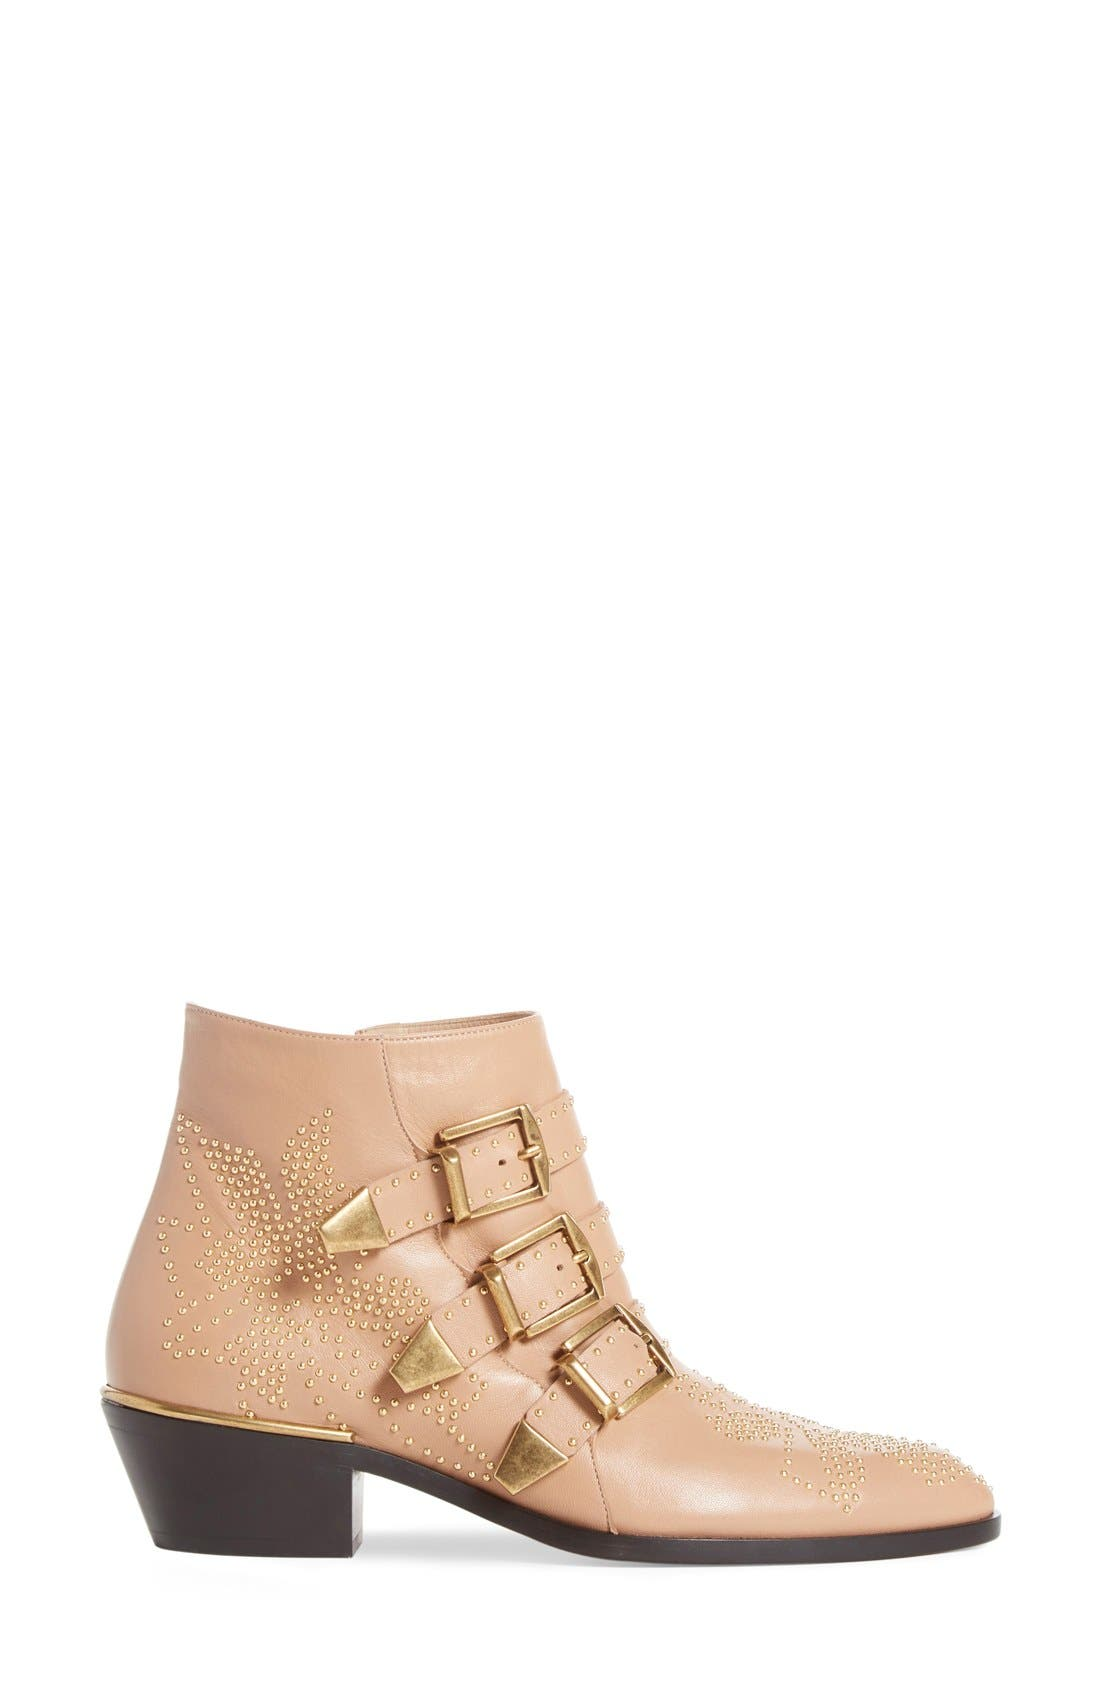 Susanna Stud Buckle Bootie,                             Alternate thumbnail 4, color,                             Beige Gold Leather